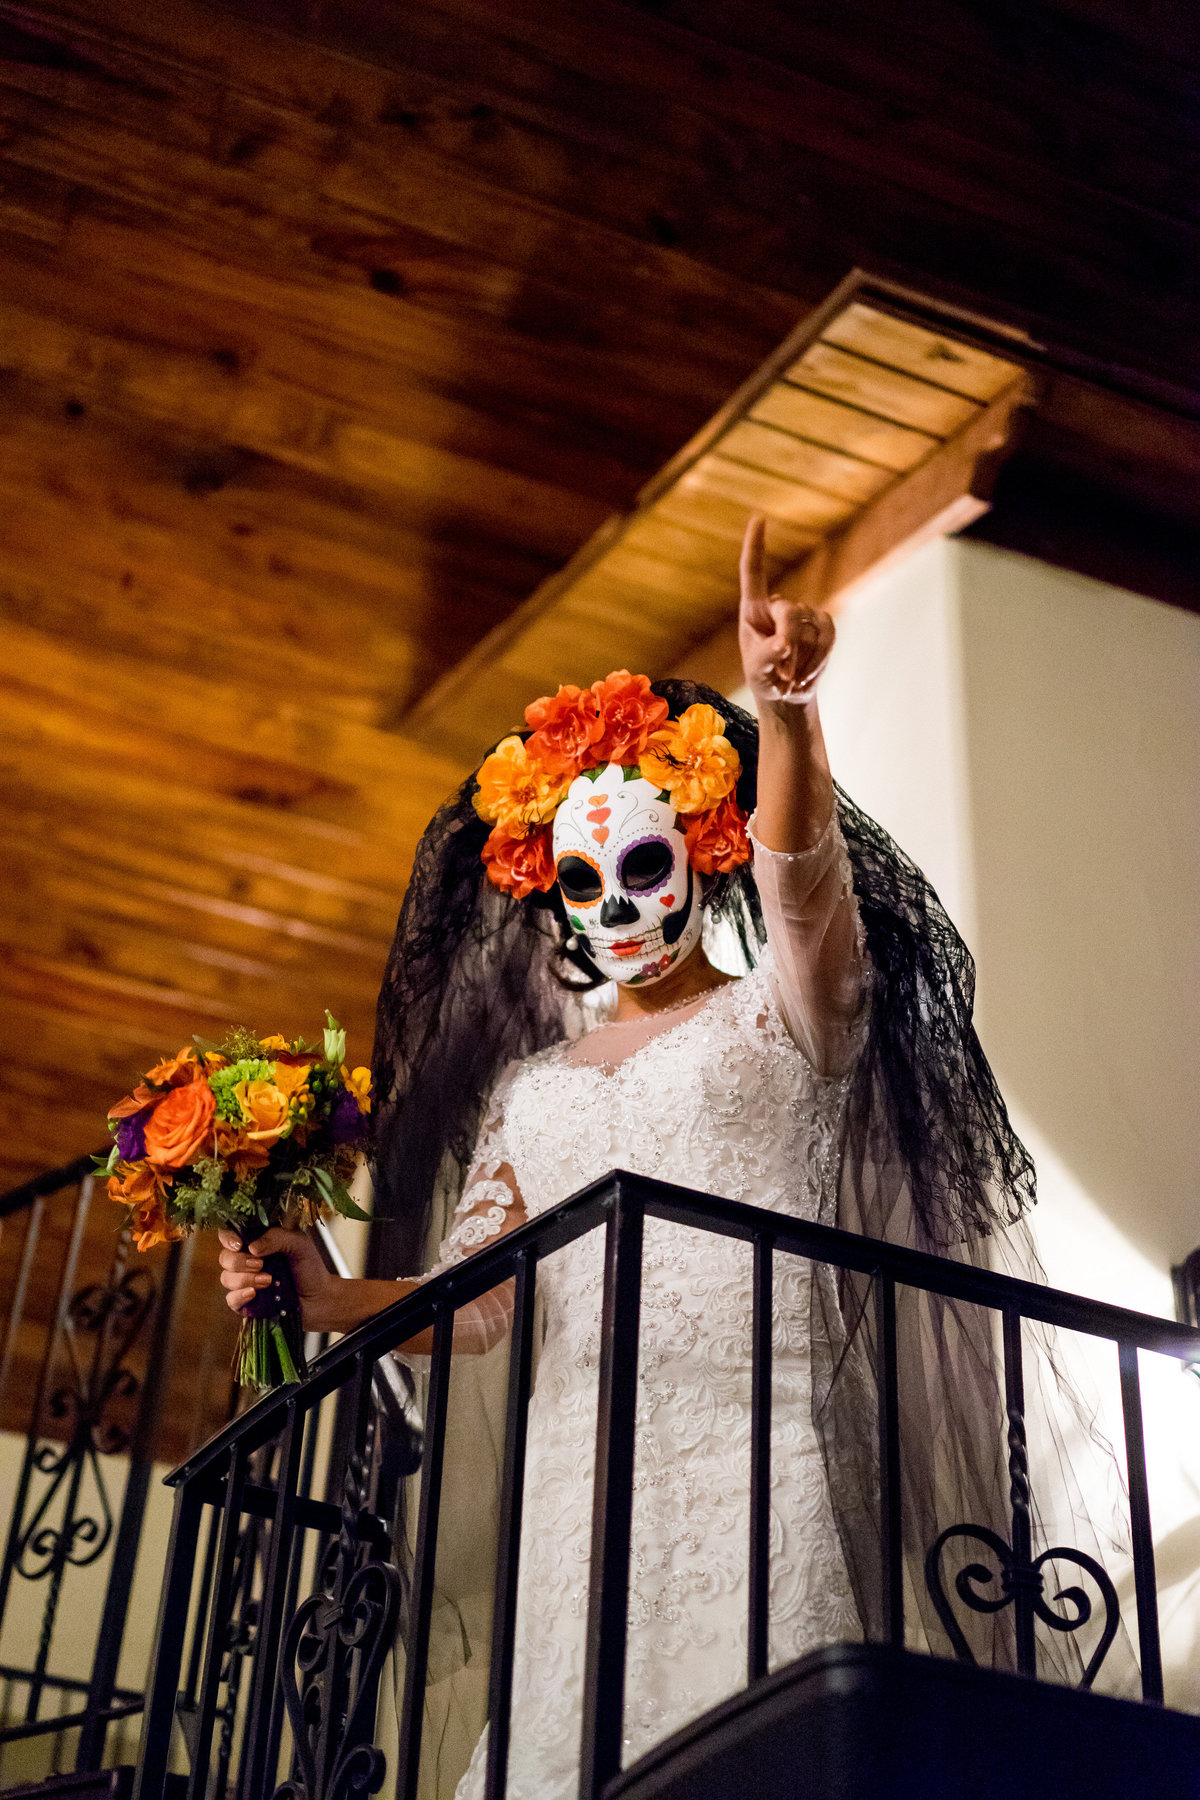 Bride wearing a dia de los muertos mask during reception at Halloween wedding to honor day of the dead at Marquardt Ranch